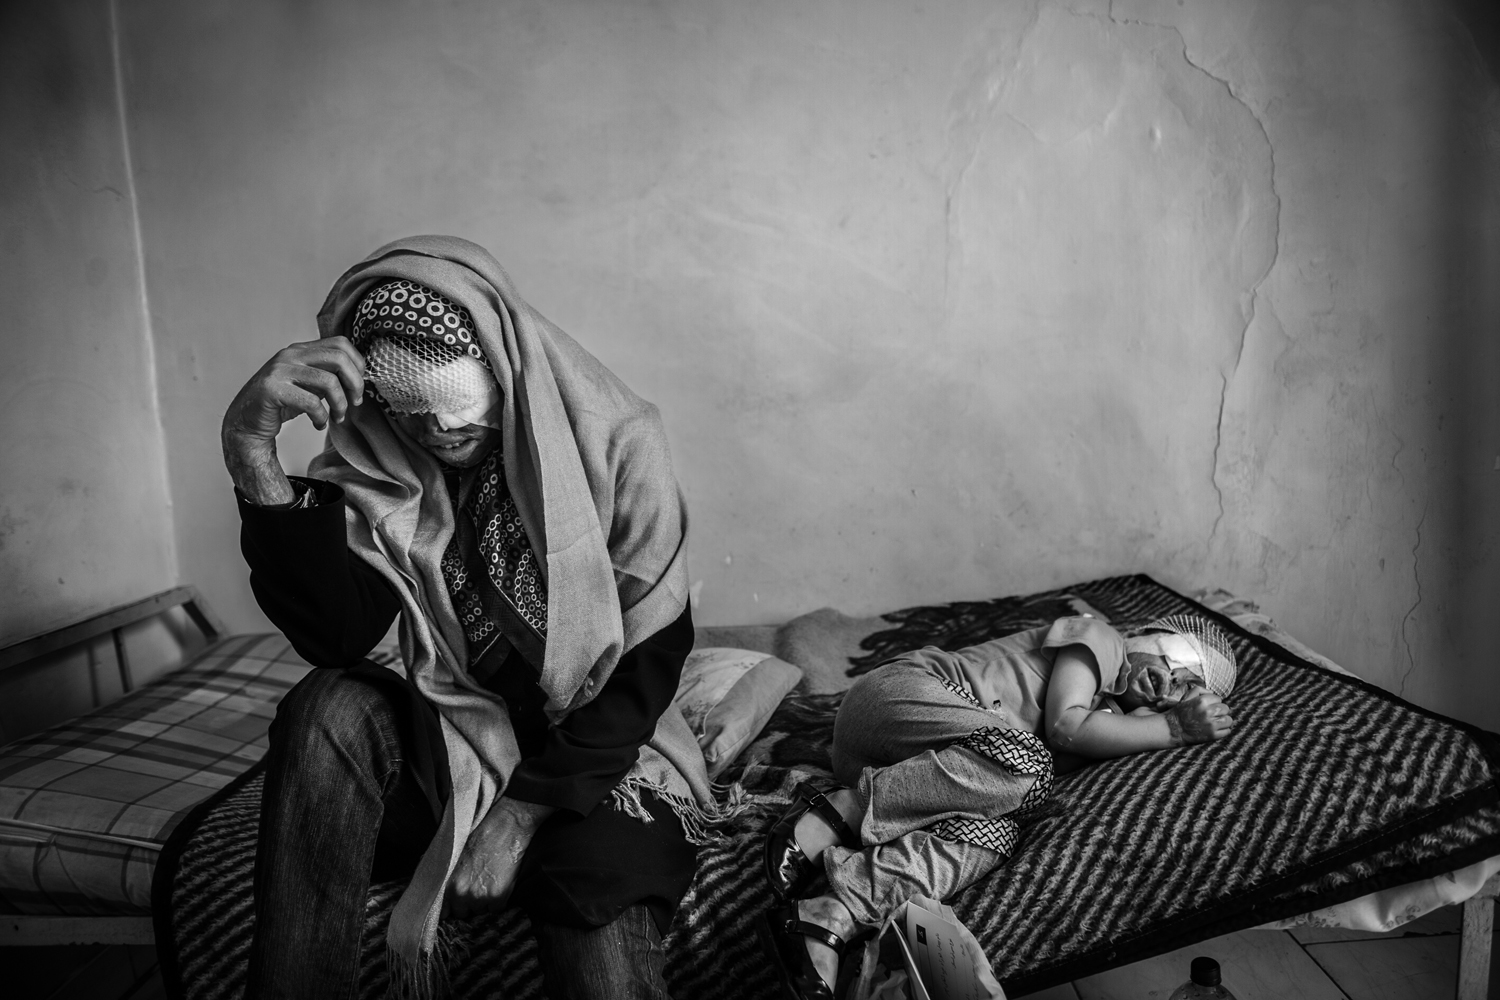 The following photographs were taken between May and December of 2012.Sommayeh and her daughter Rana rest in a hostel in downtown Tehran. The two have shuttled to the Iranian capital for treatment after Sommayeh's husband attacked the family with acid.